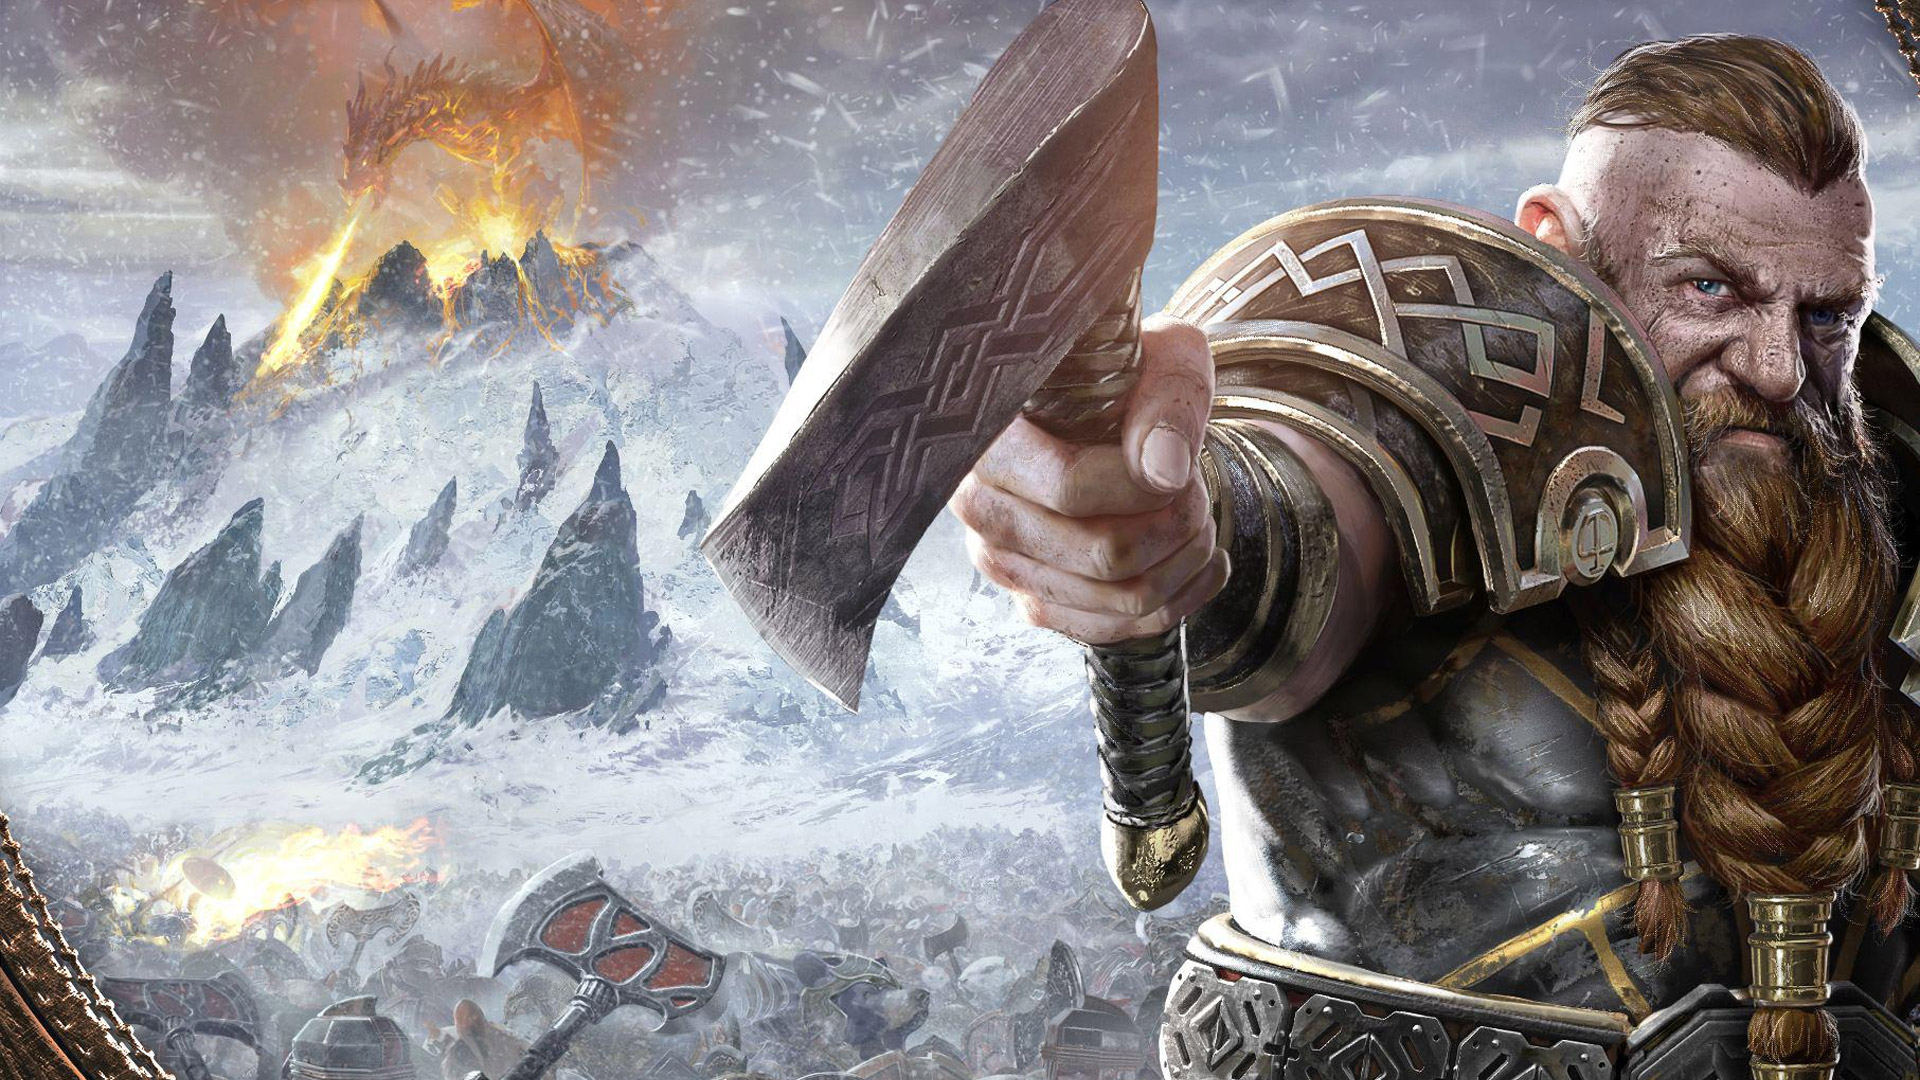 Free Might & Magic Heroes VII Wallpaper in 1920x1080